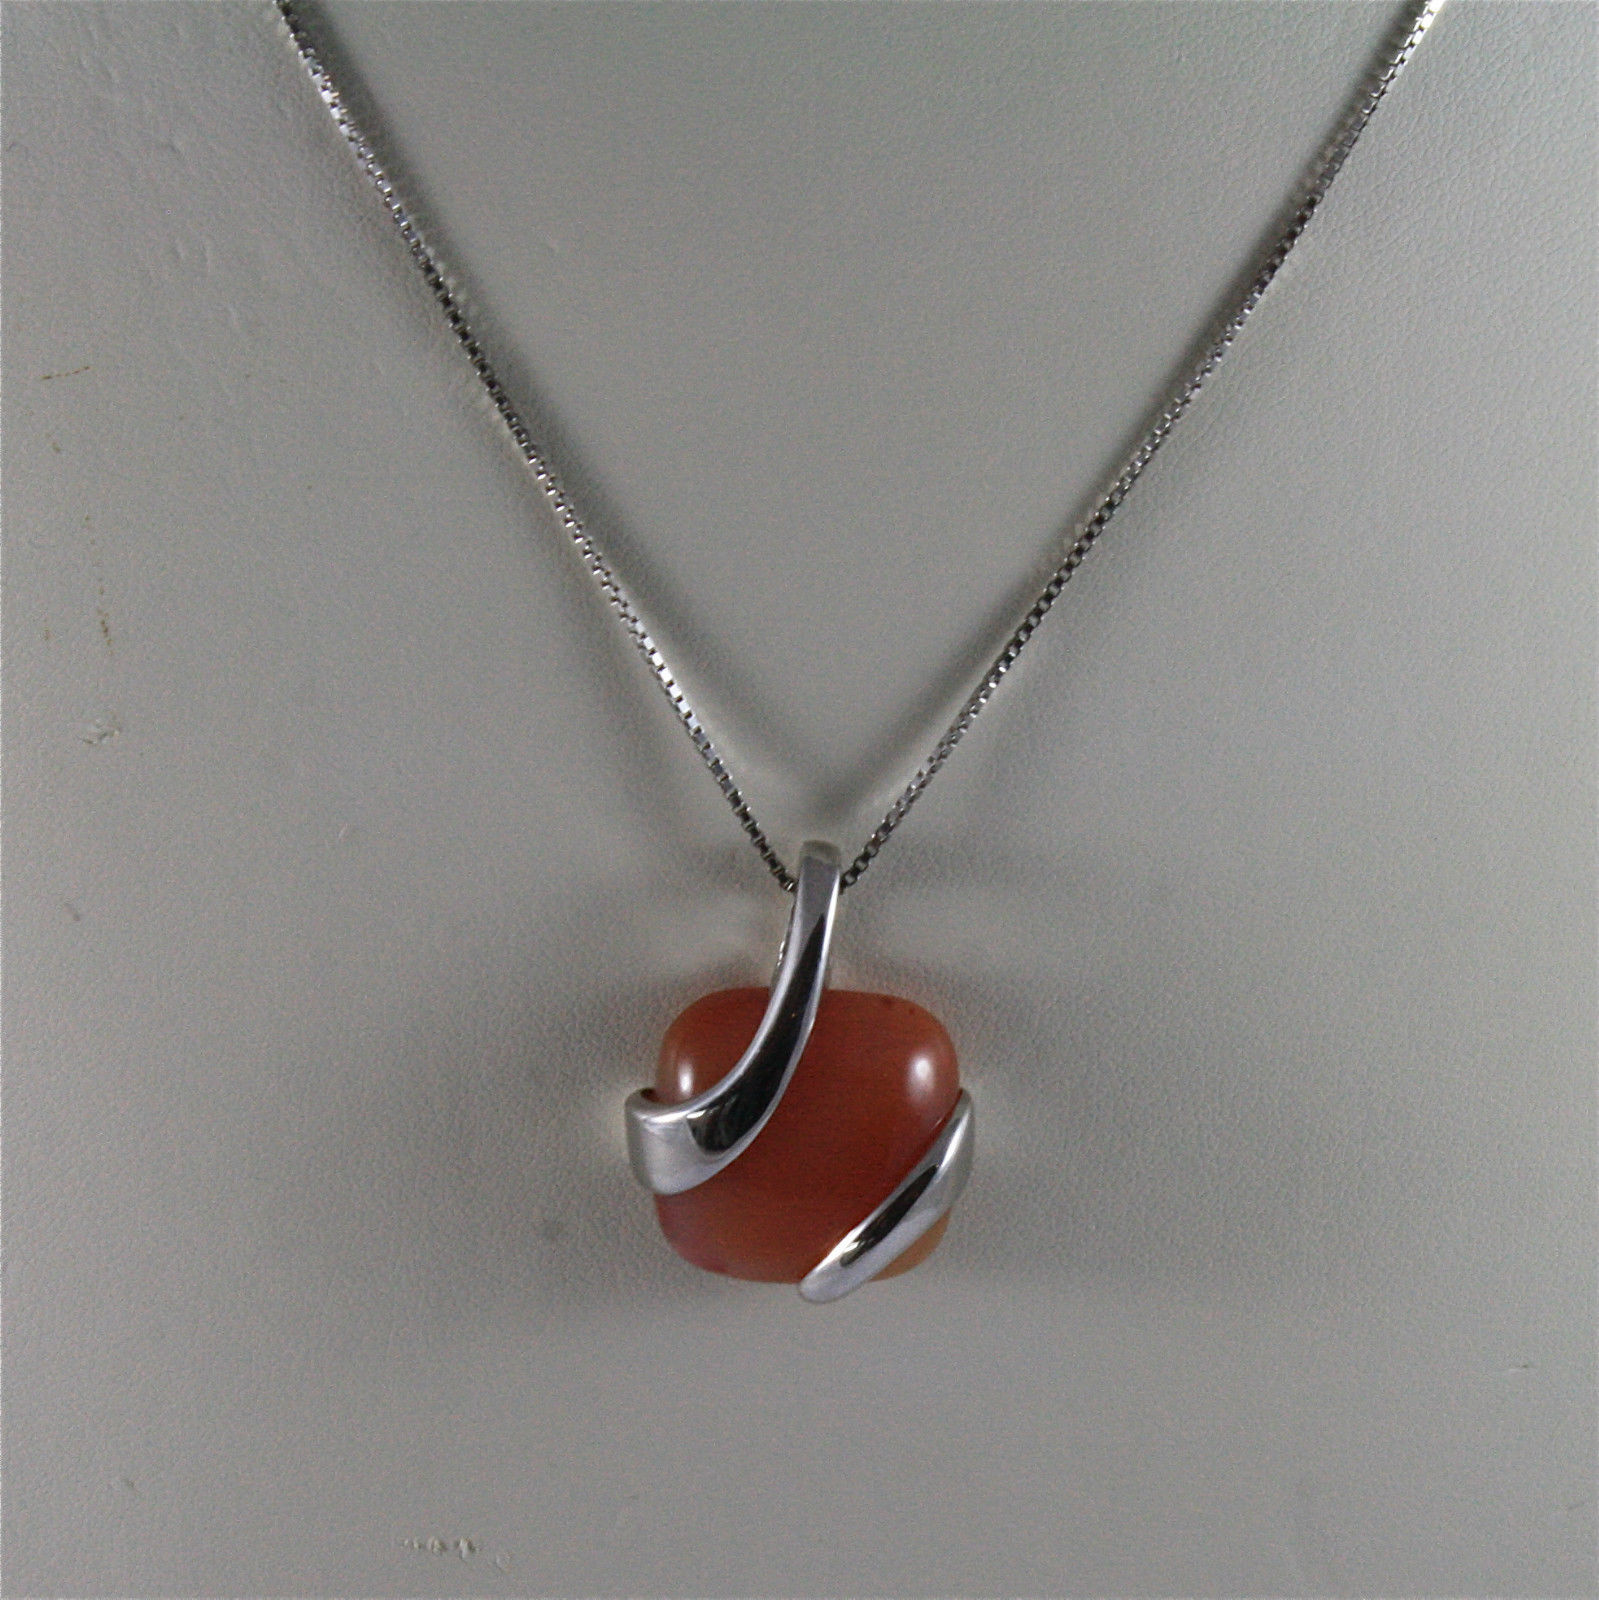 925 STERLING SILVER RHODIUM NECKLACE 17,72 In, RED AGATE PENDANT, VENETIAN MESH.